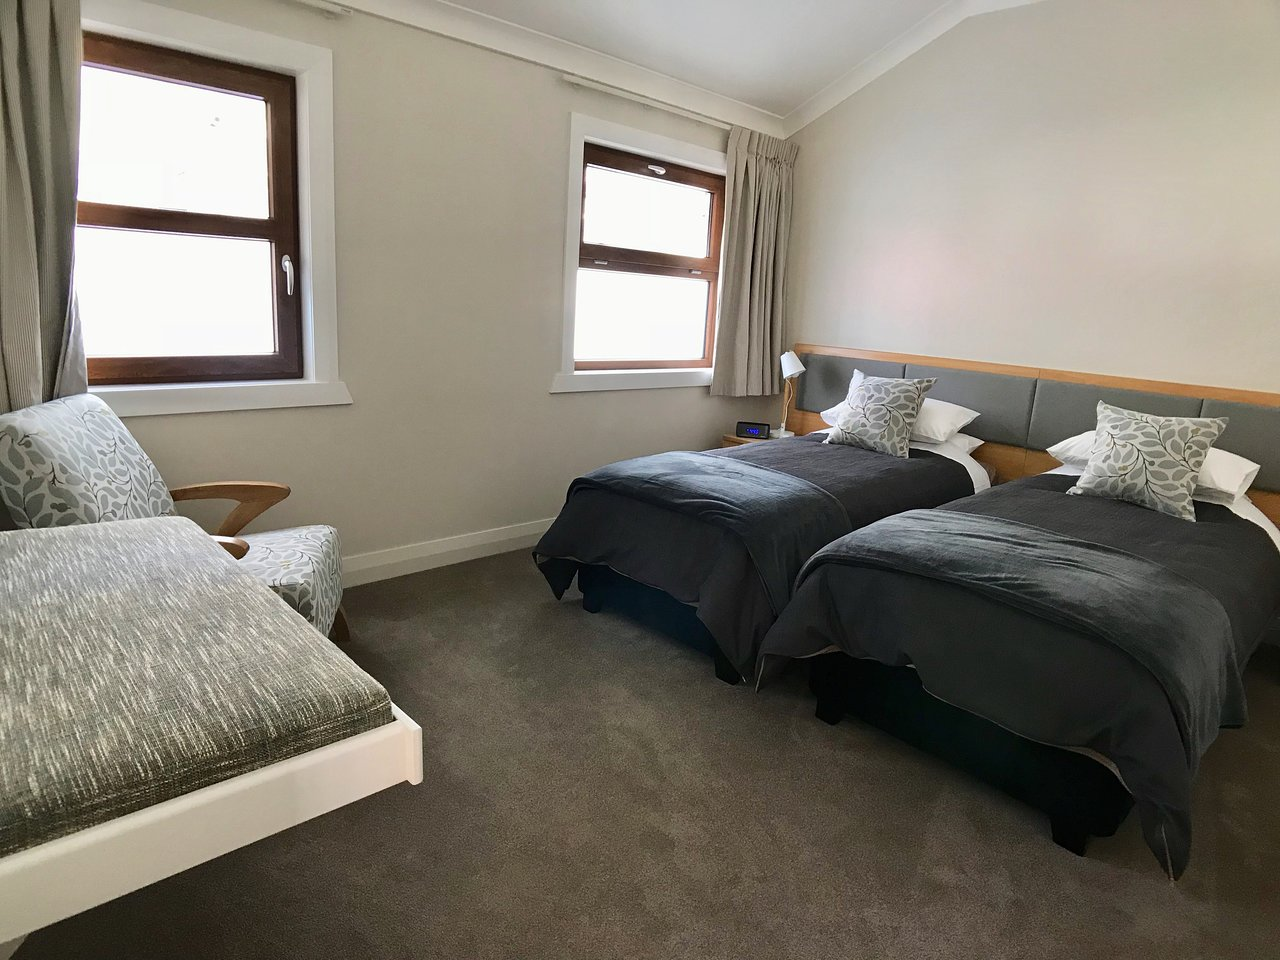 arthurs pass motel and lodge updated 2019 prices inn reviews rh tripadvisor com